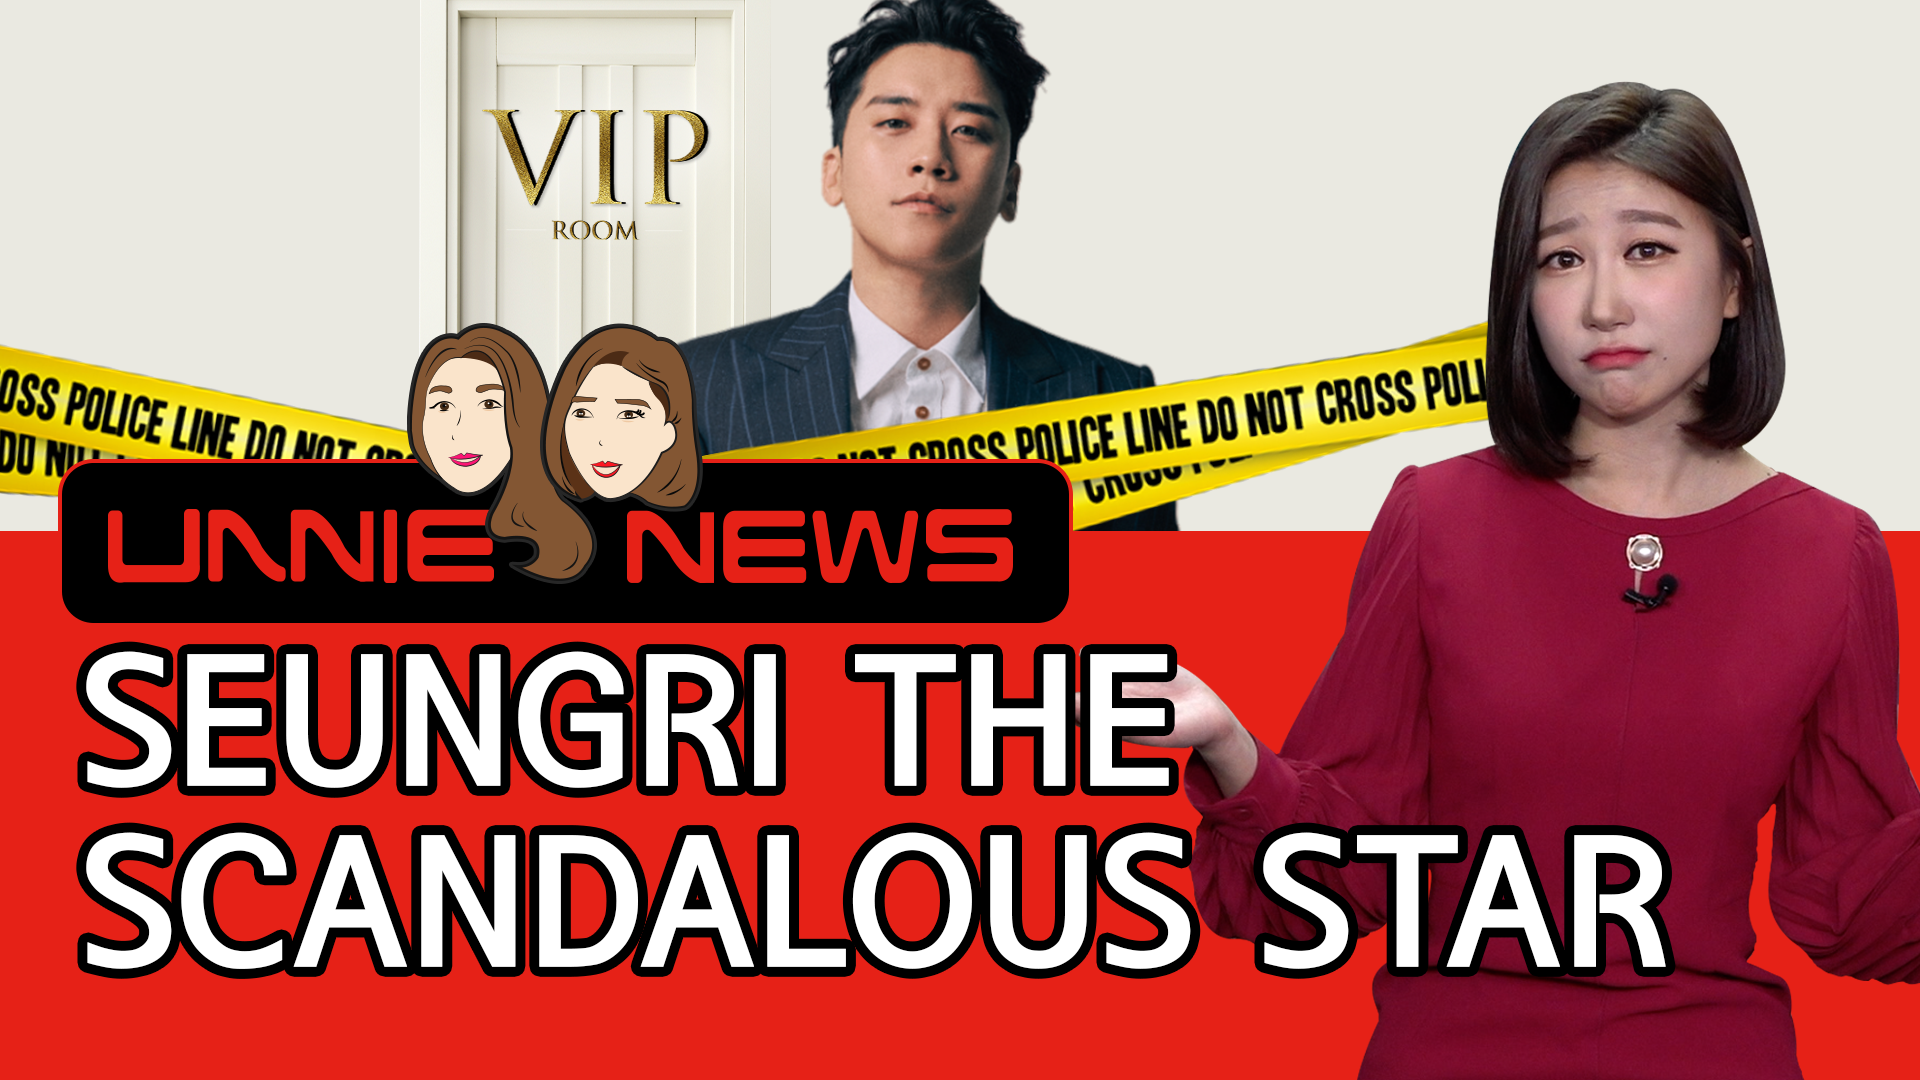 Seungri the Scandalous Star [UNNIE NEWS]